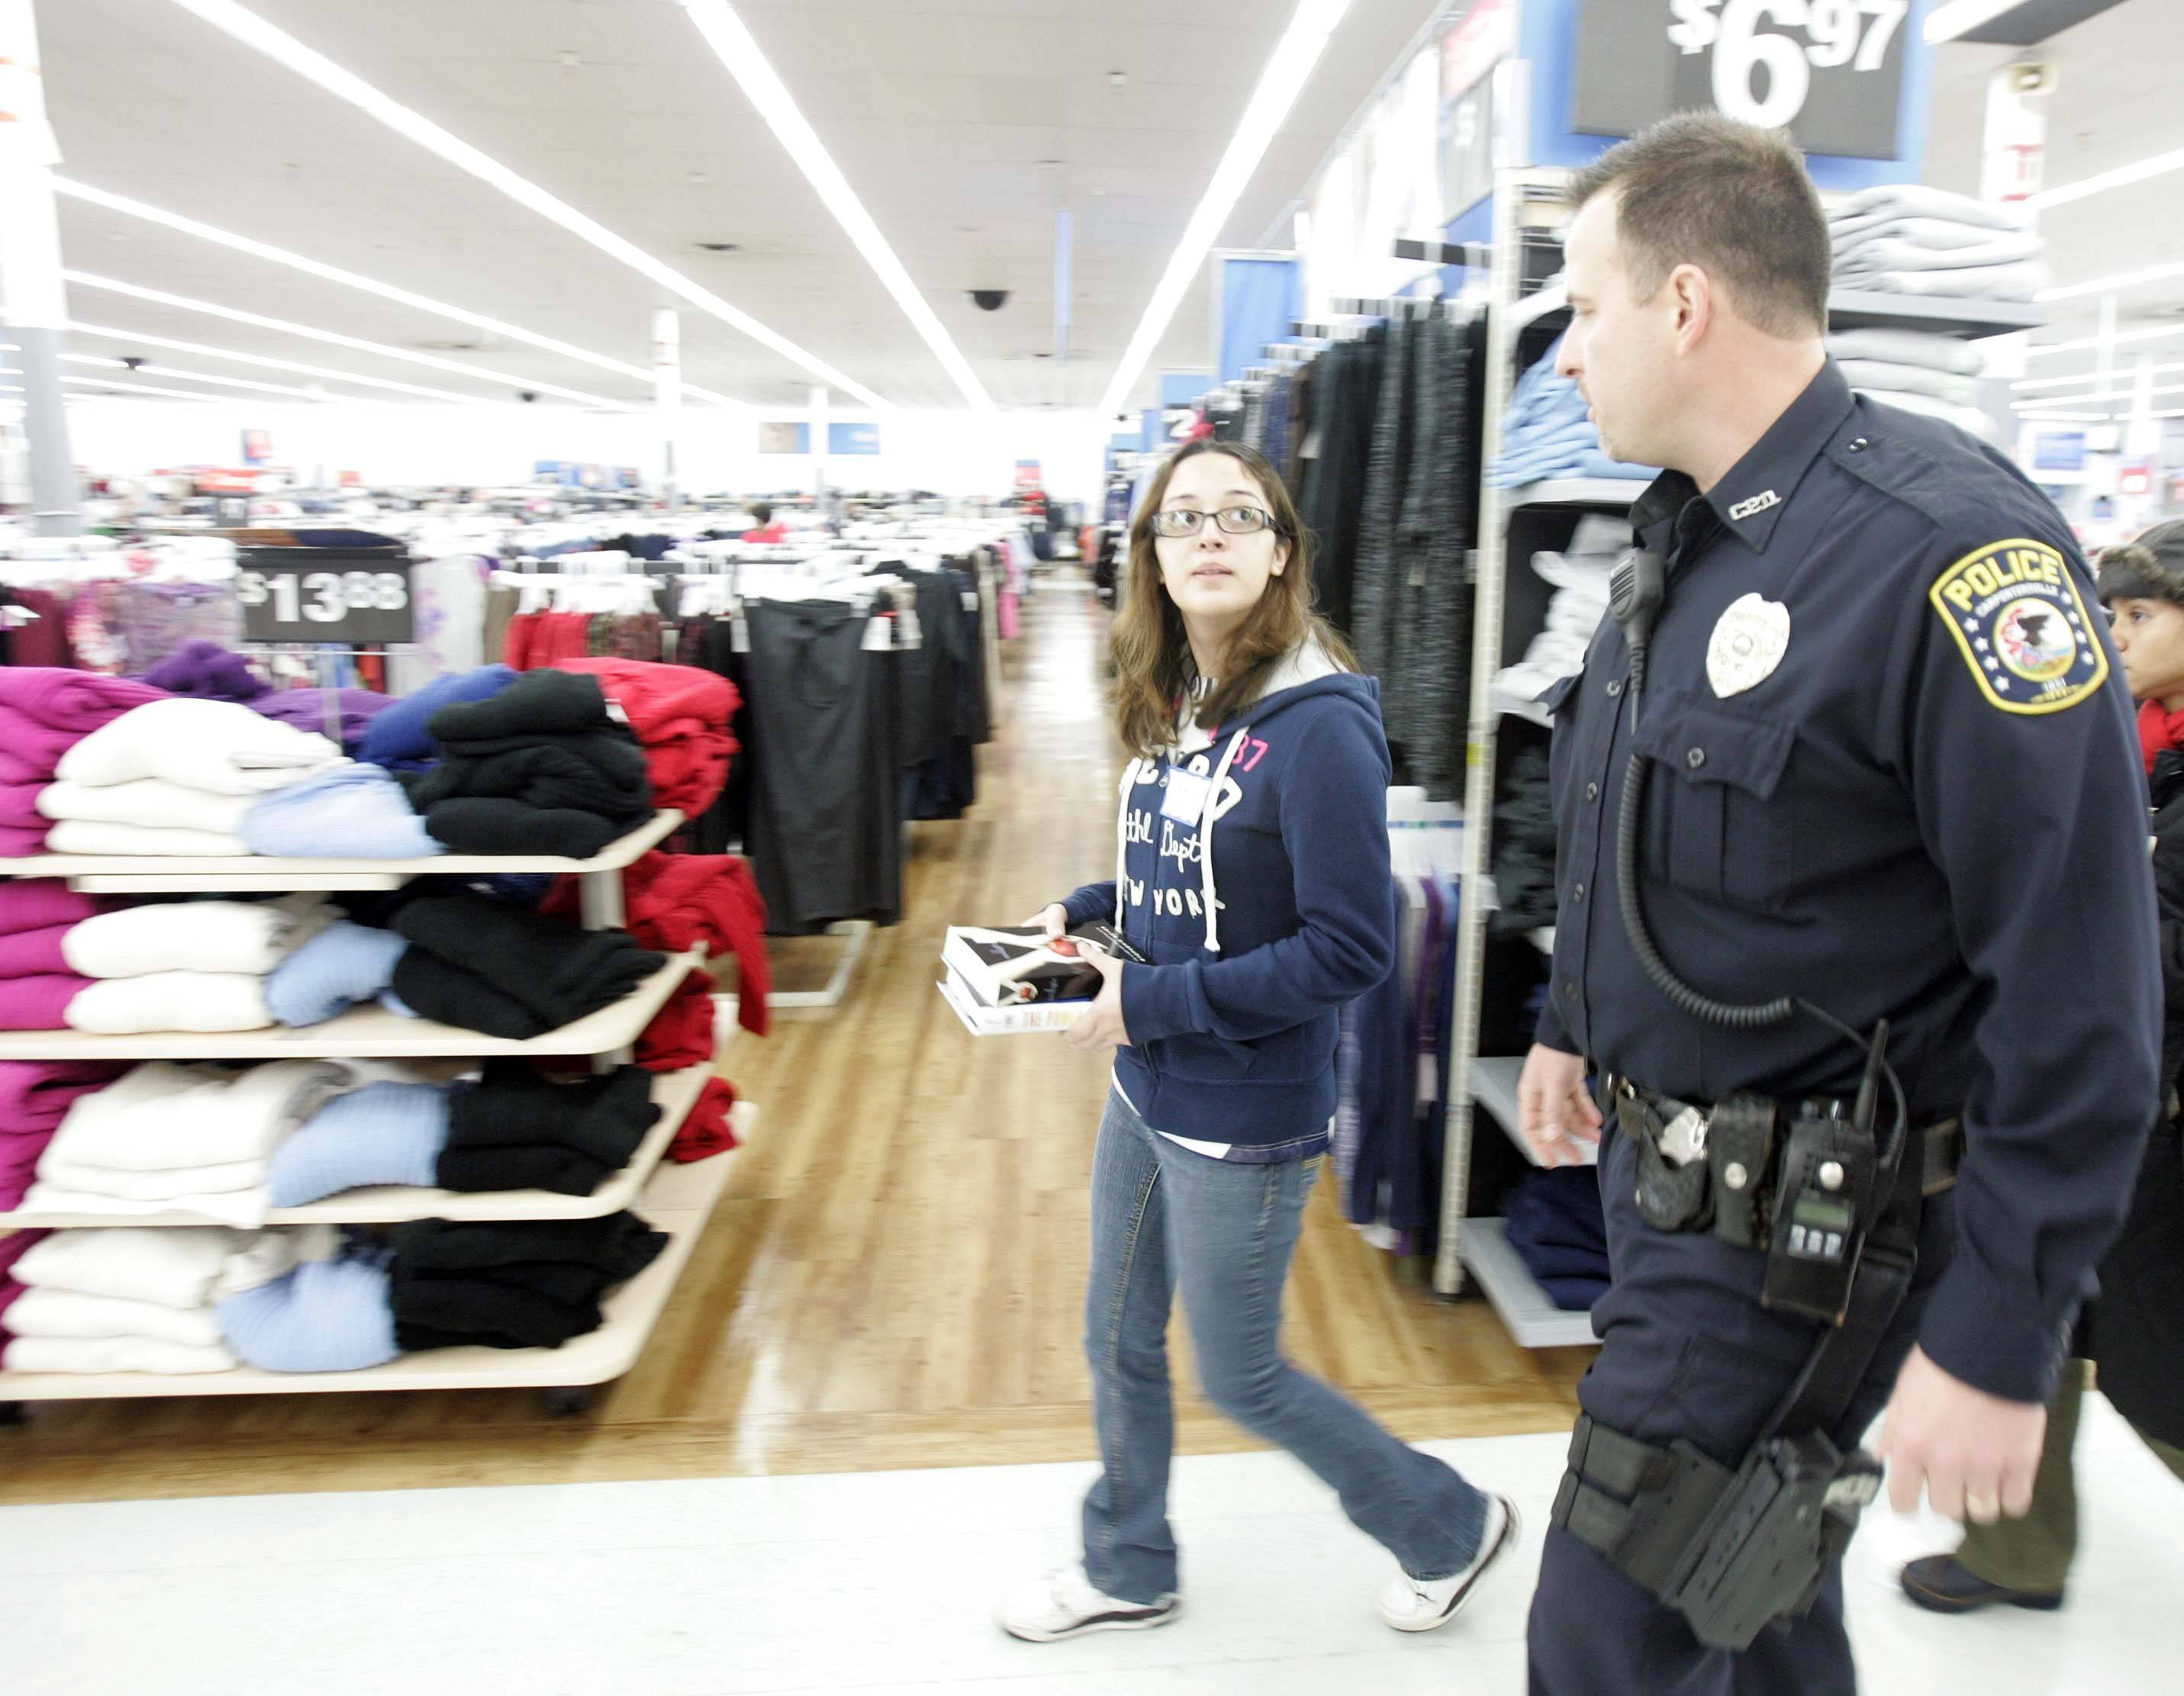 Brian Hill/bhill@dailyherald.comGabriela Vega, 15, of Carpentersville, carries a gift for one of her siblings as she talks to Officer Morgan Brown of Carpentersville during the Shop with a Cop program at Wal-Mart in East Dundee Saturday.